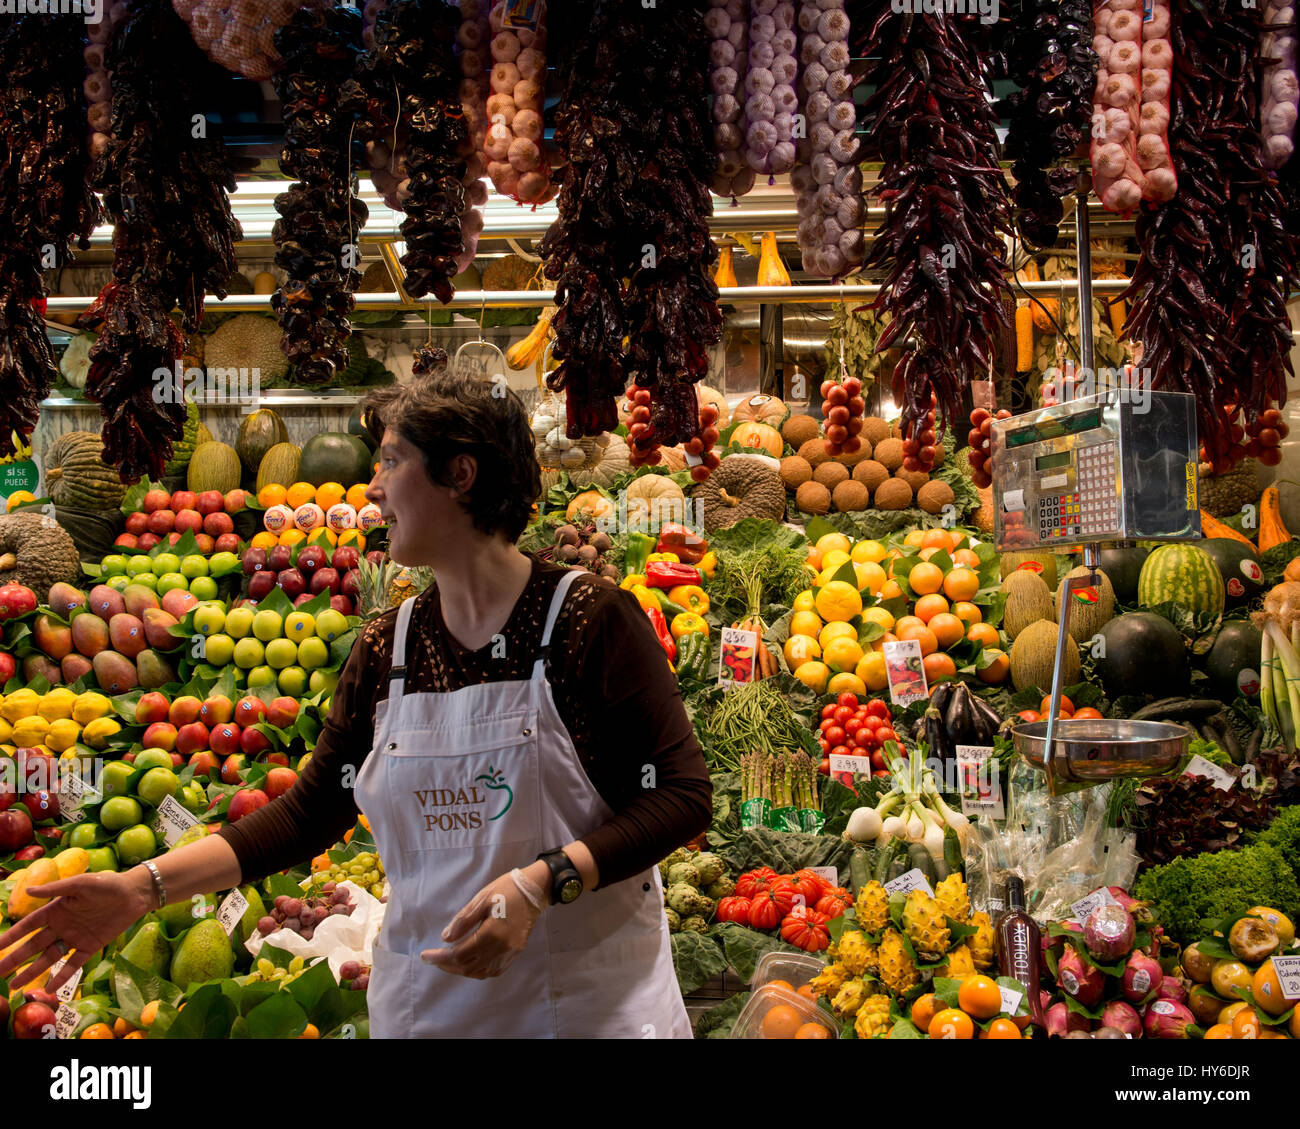 Woman gesticulating in front of fruit market stall at La Boqueria Market, Las Ramblas, Barcelona, Catalonia, Spain - Stock Image